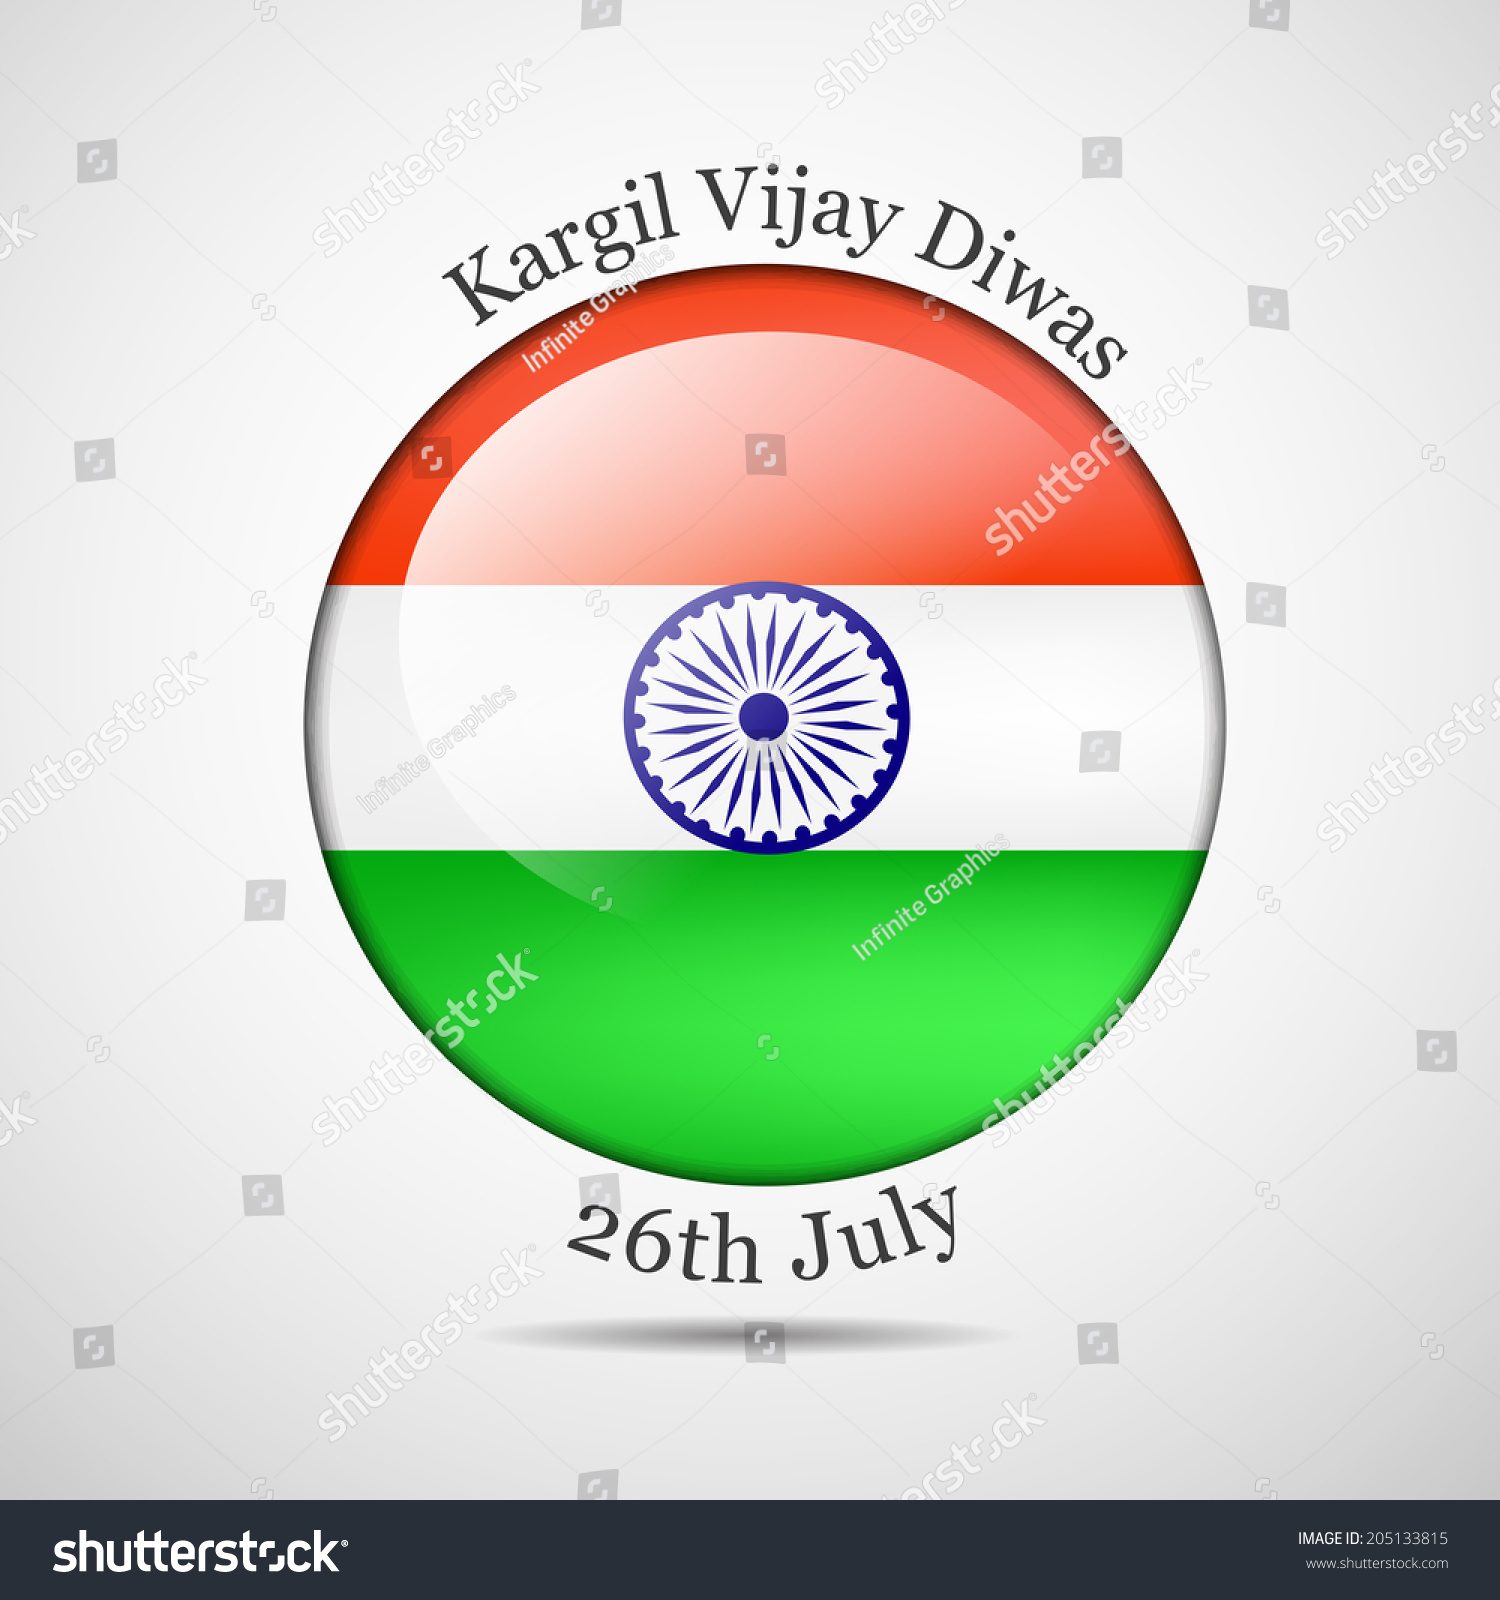 Image result for kargil vijay diwas